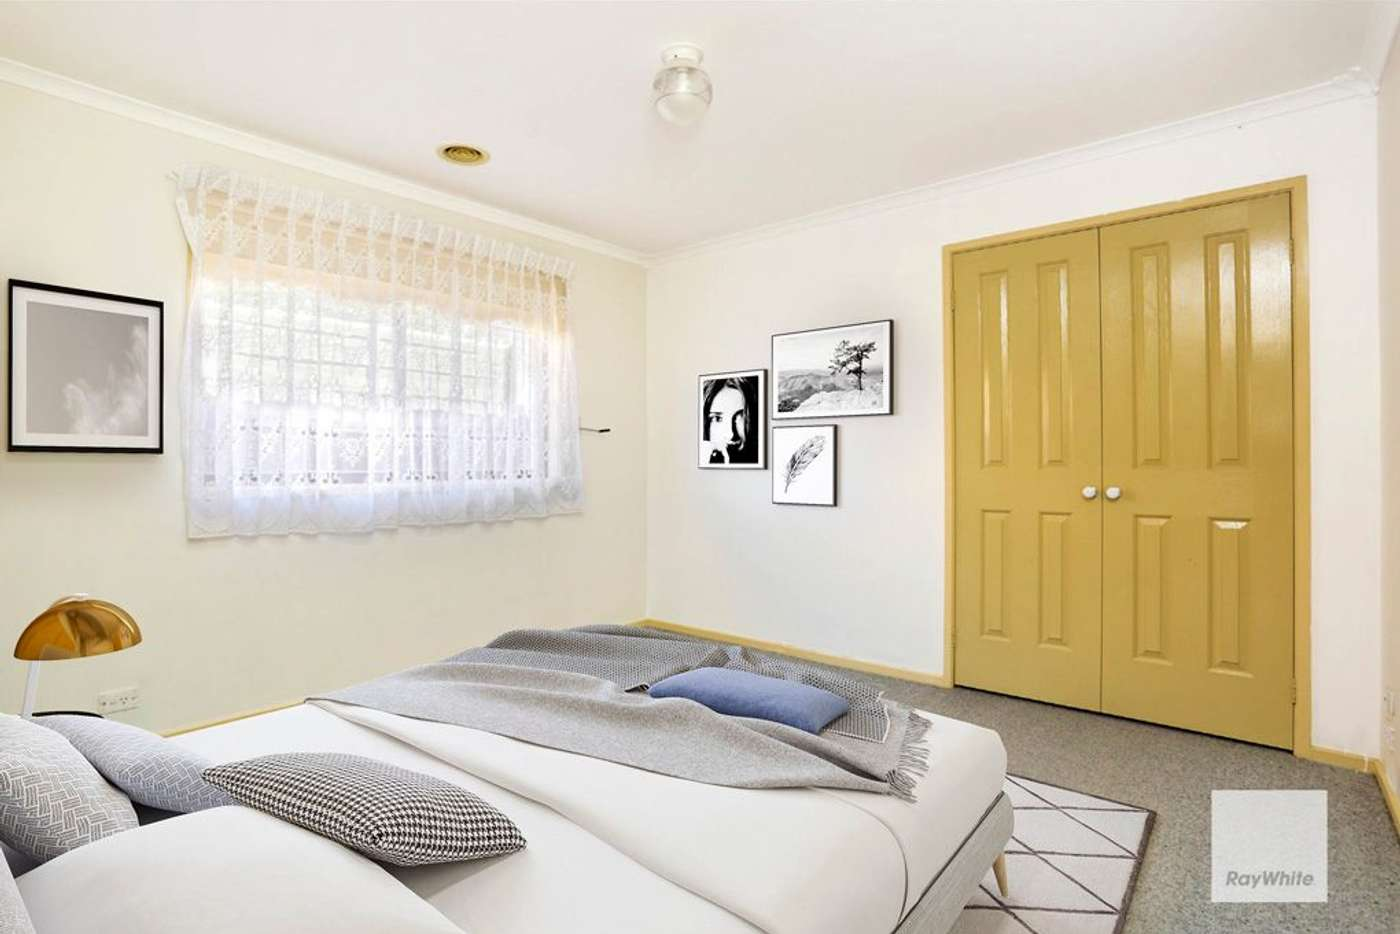 Sixth view of Homely house listing, 8 Birkett Court, Altona Meadows VIC 3028